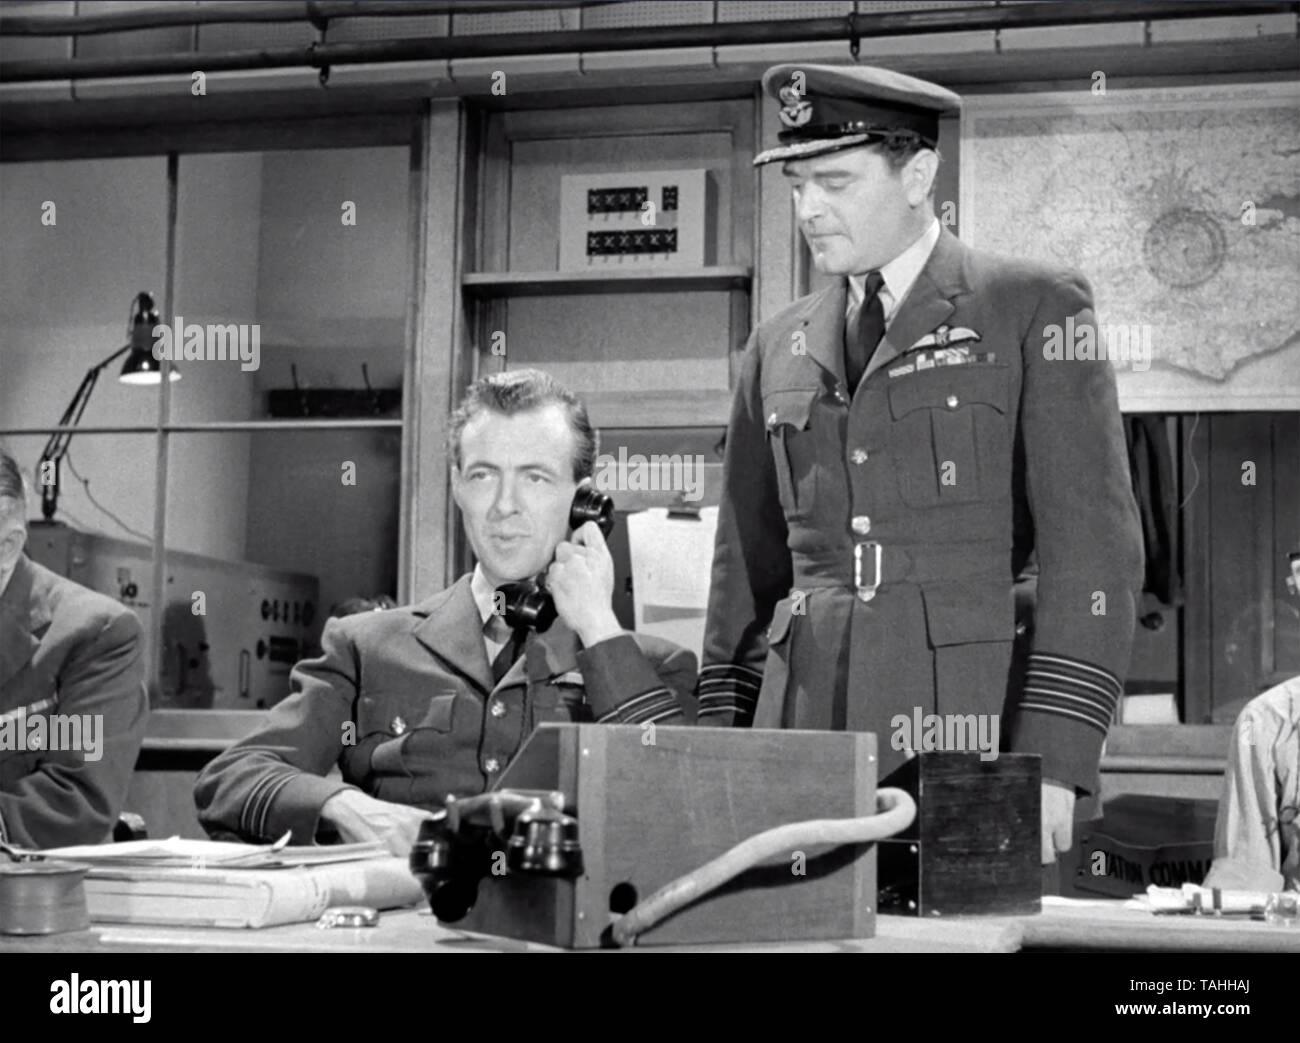 ANGELS ONE FIVE 1952 Associated British Studios film with Jack Hawkins as Group Capt 'Tiger' Small at right and  Michael Dennison as Squadron Leader Peter Moon - Stock Image